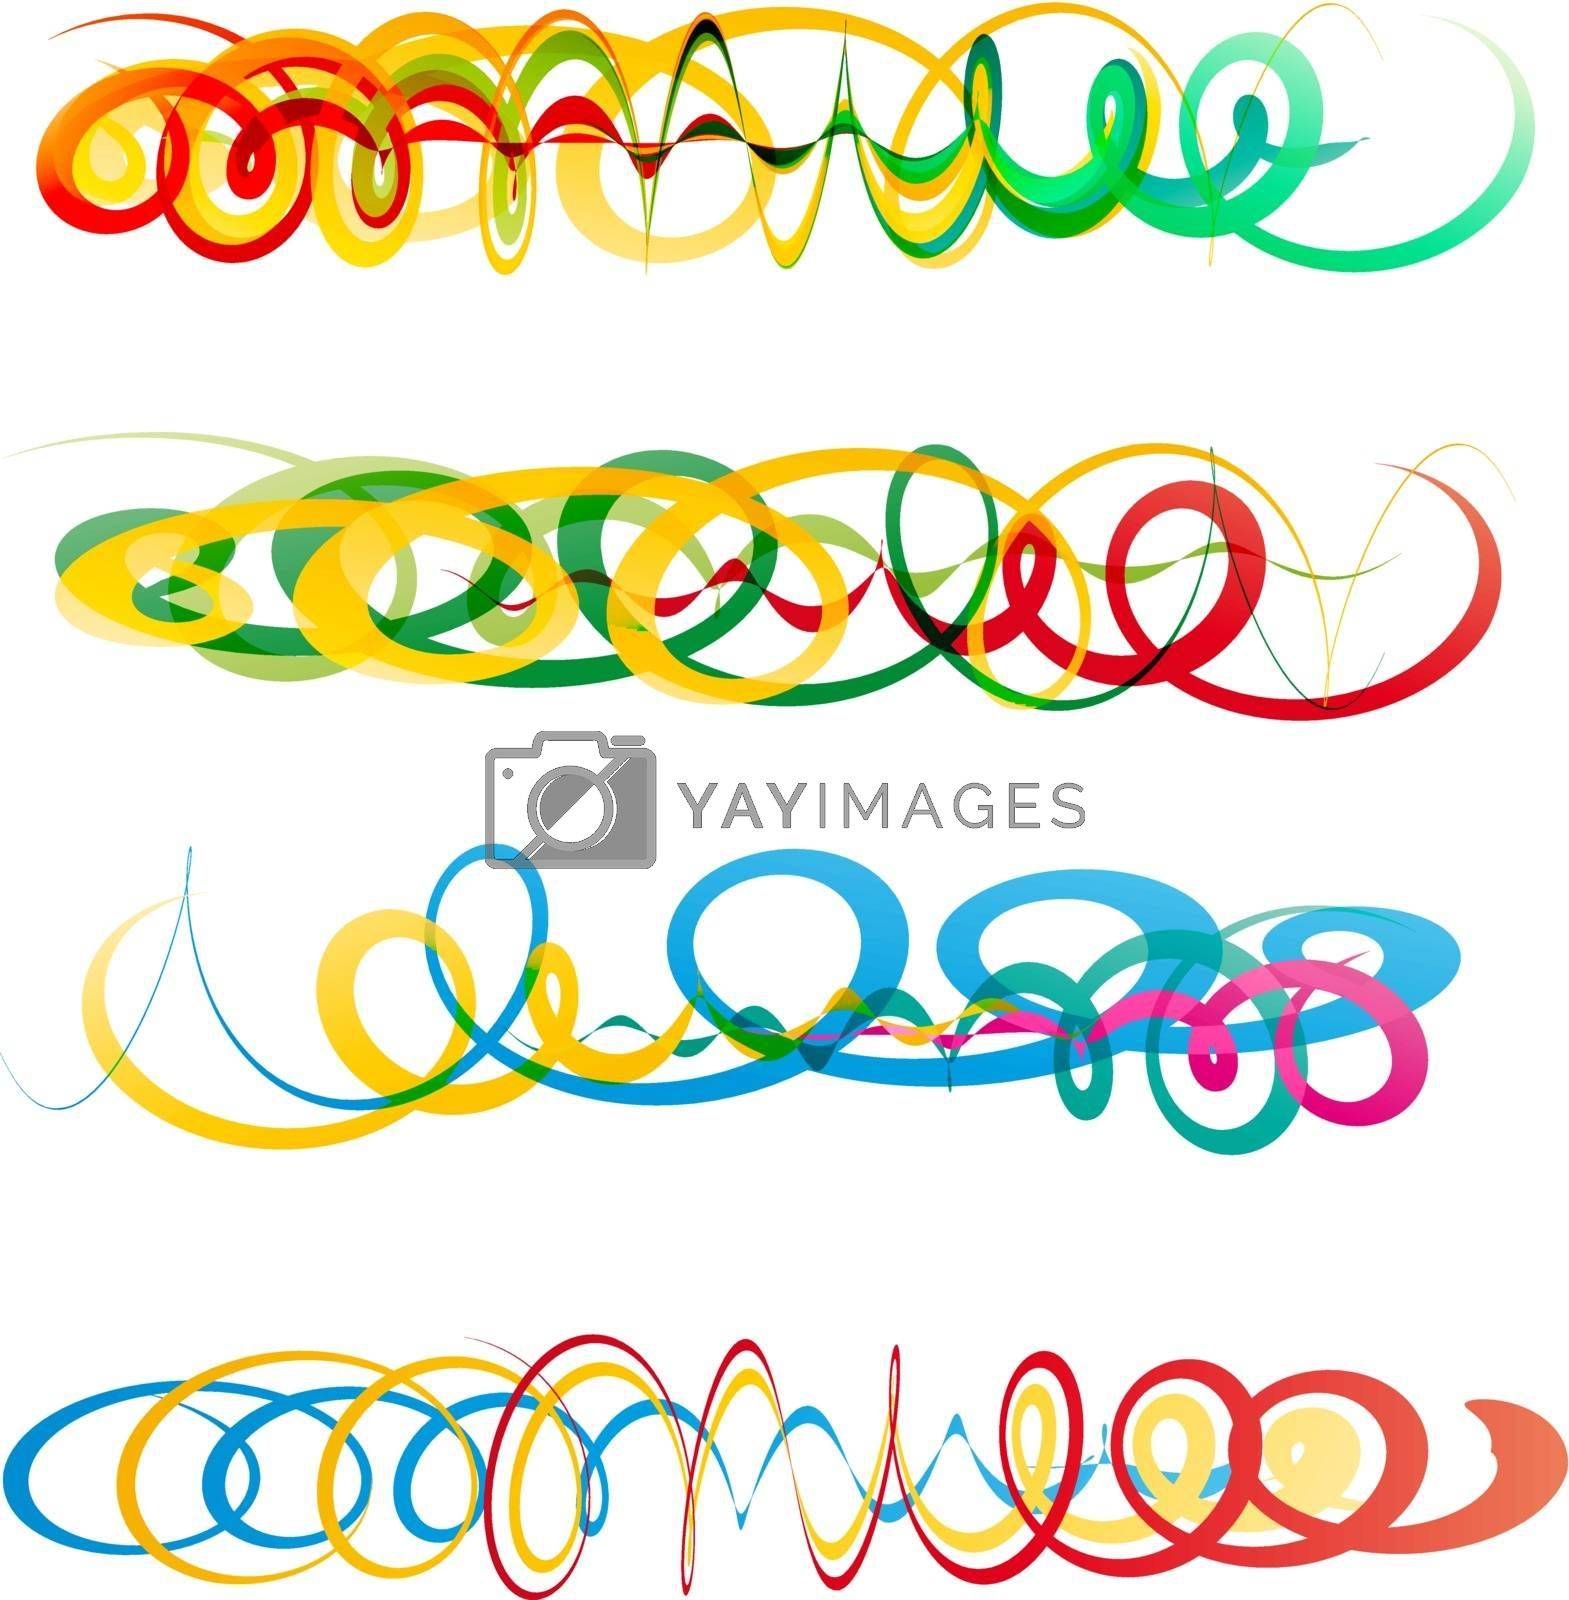 Colorful abstract curly ribbon header elements for creative design